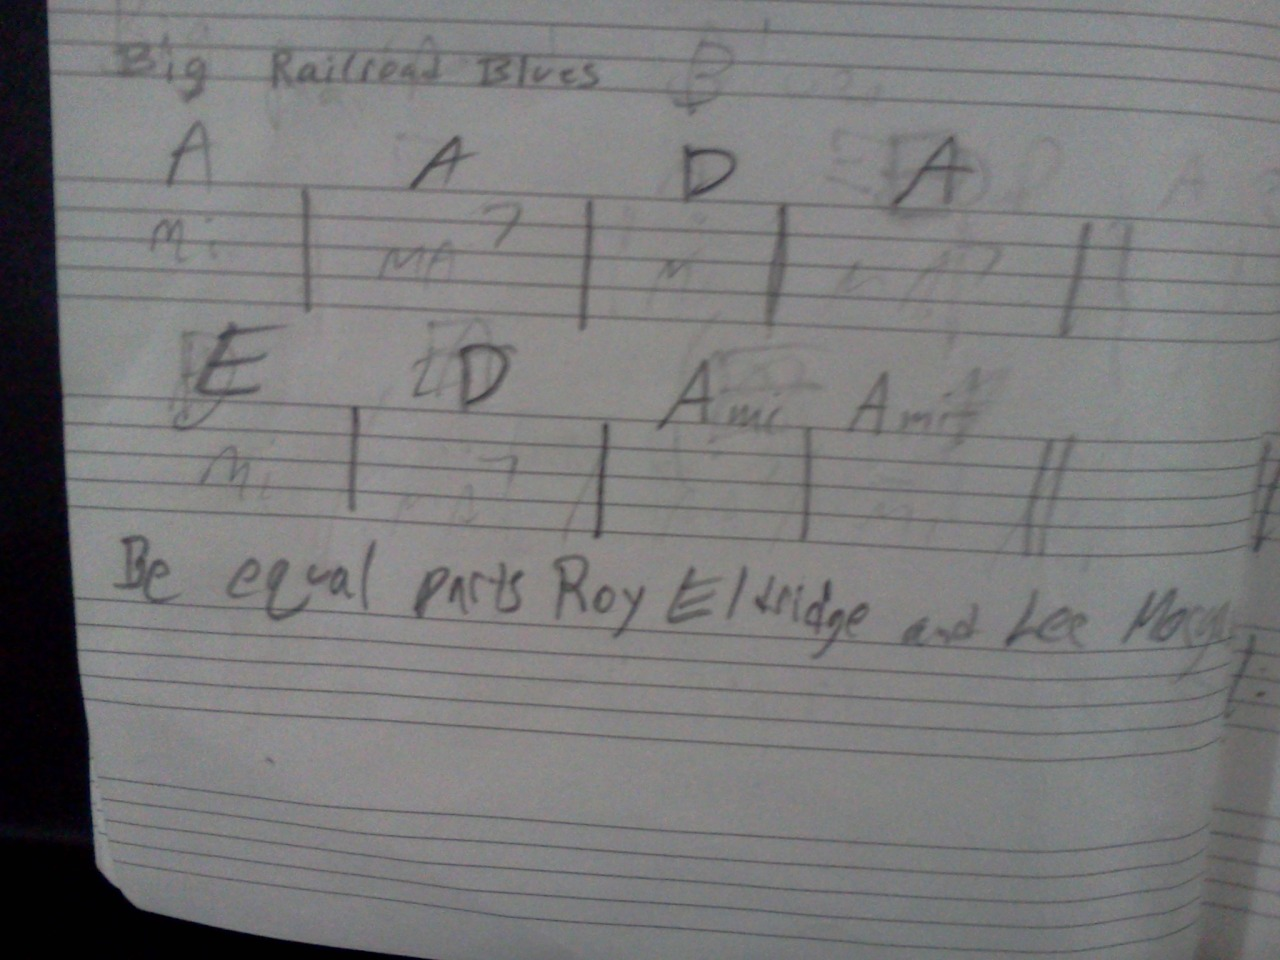 Be equal parts Roy Eldridge and Lee Morgan  This is a note I wrote to myself on how to play this song.  I'm playing trumpet/flugel in Spaceman Spliff:  https://www.facebook.com/pages/Spaceman-Spliff/173344769381415